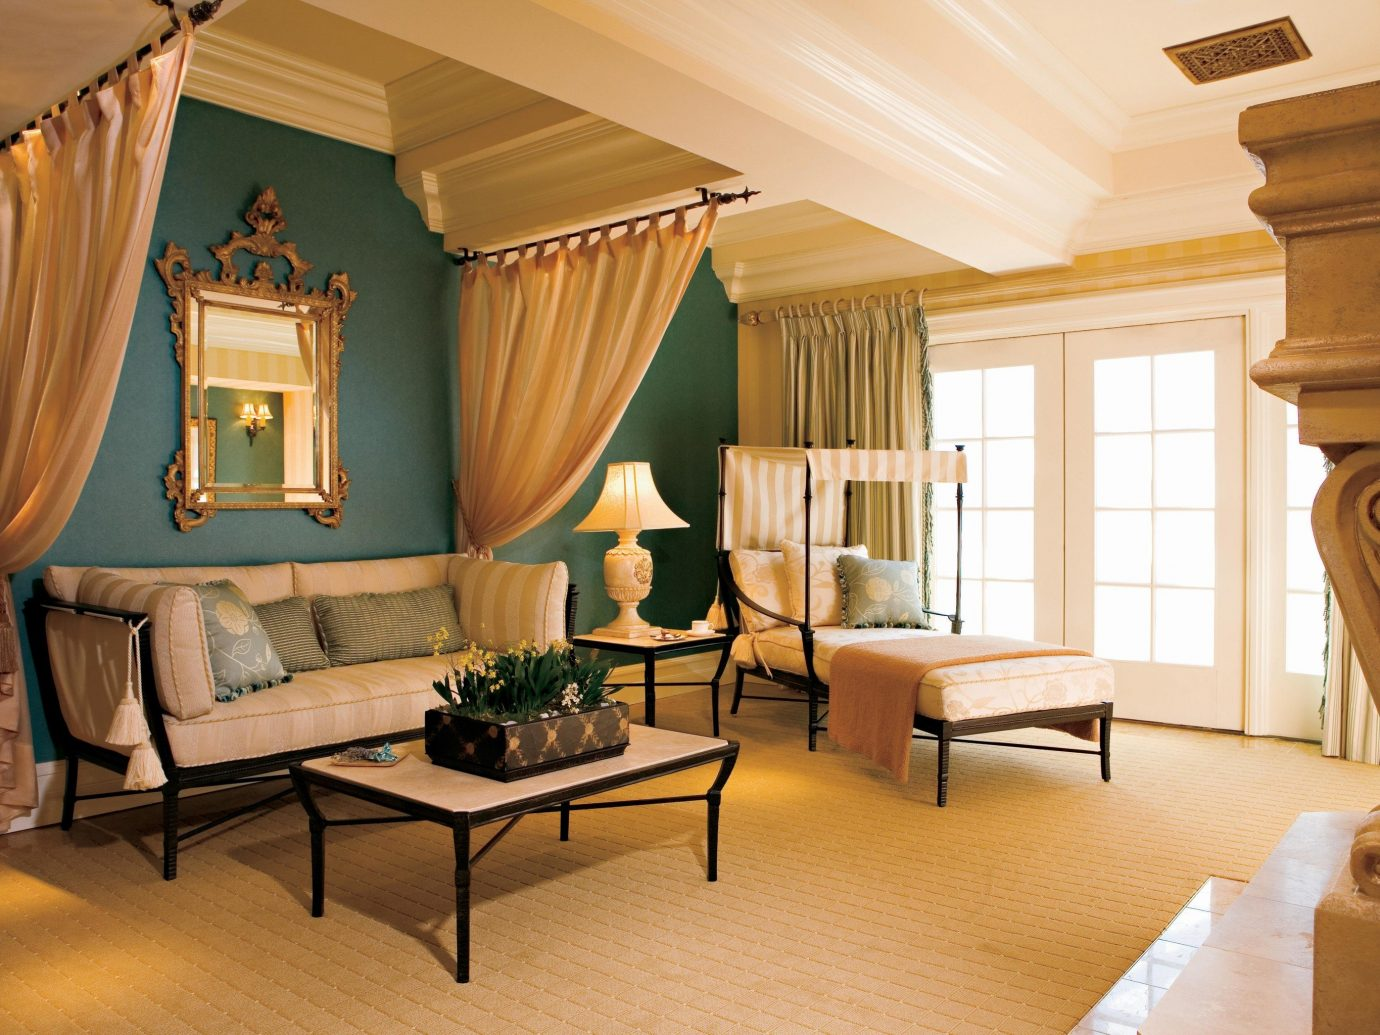 Living Room At Fairmont Grand Del Mar In San Diego, Ca, Usa